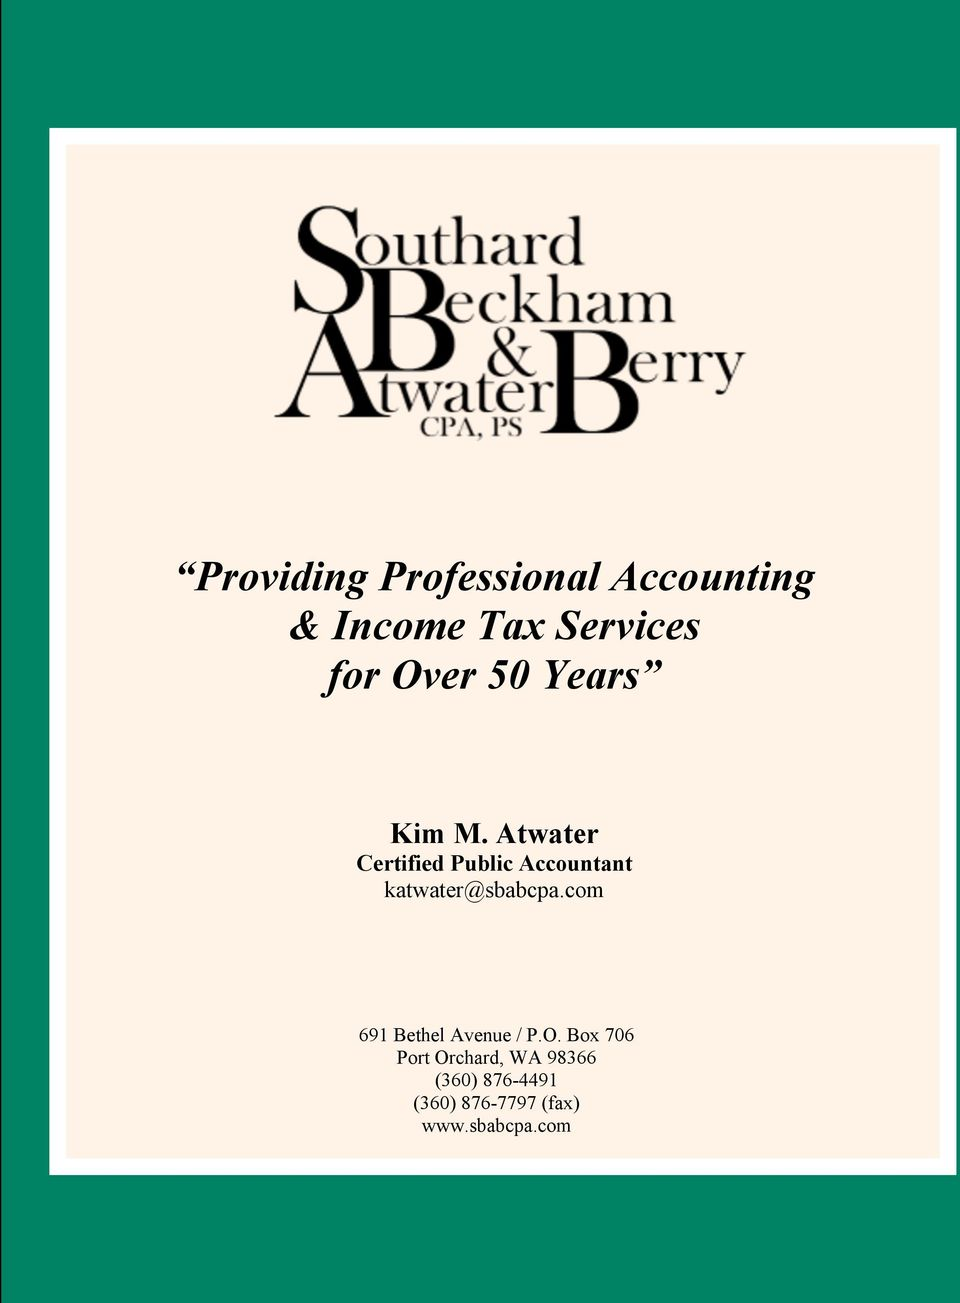 Atwater Certified Public Accountant katwater@sbabcpa.